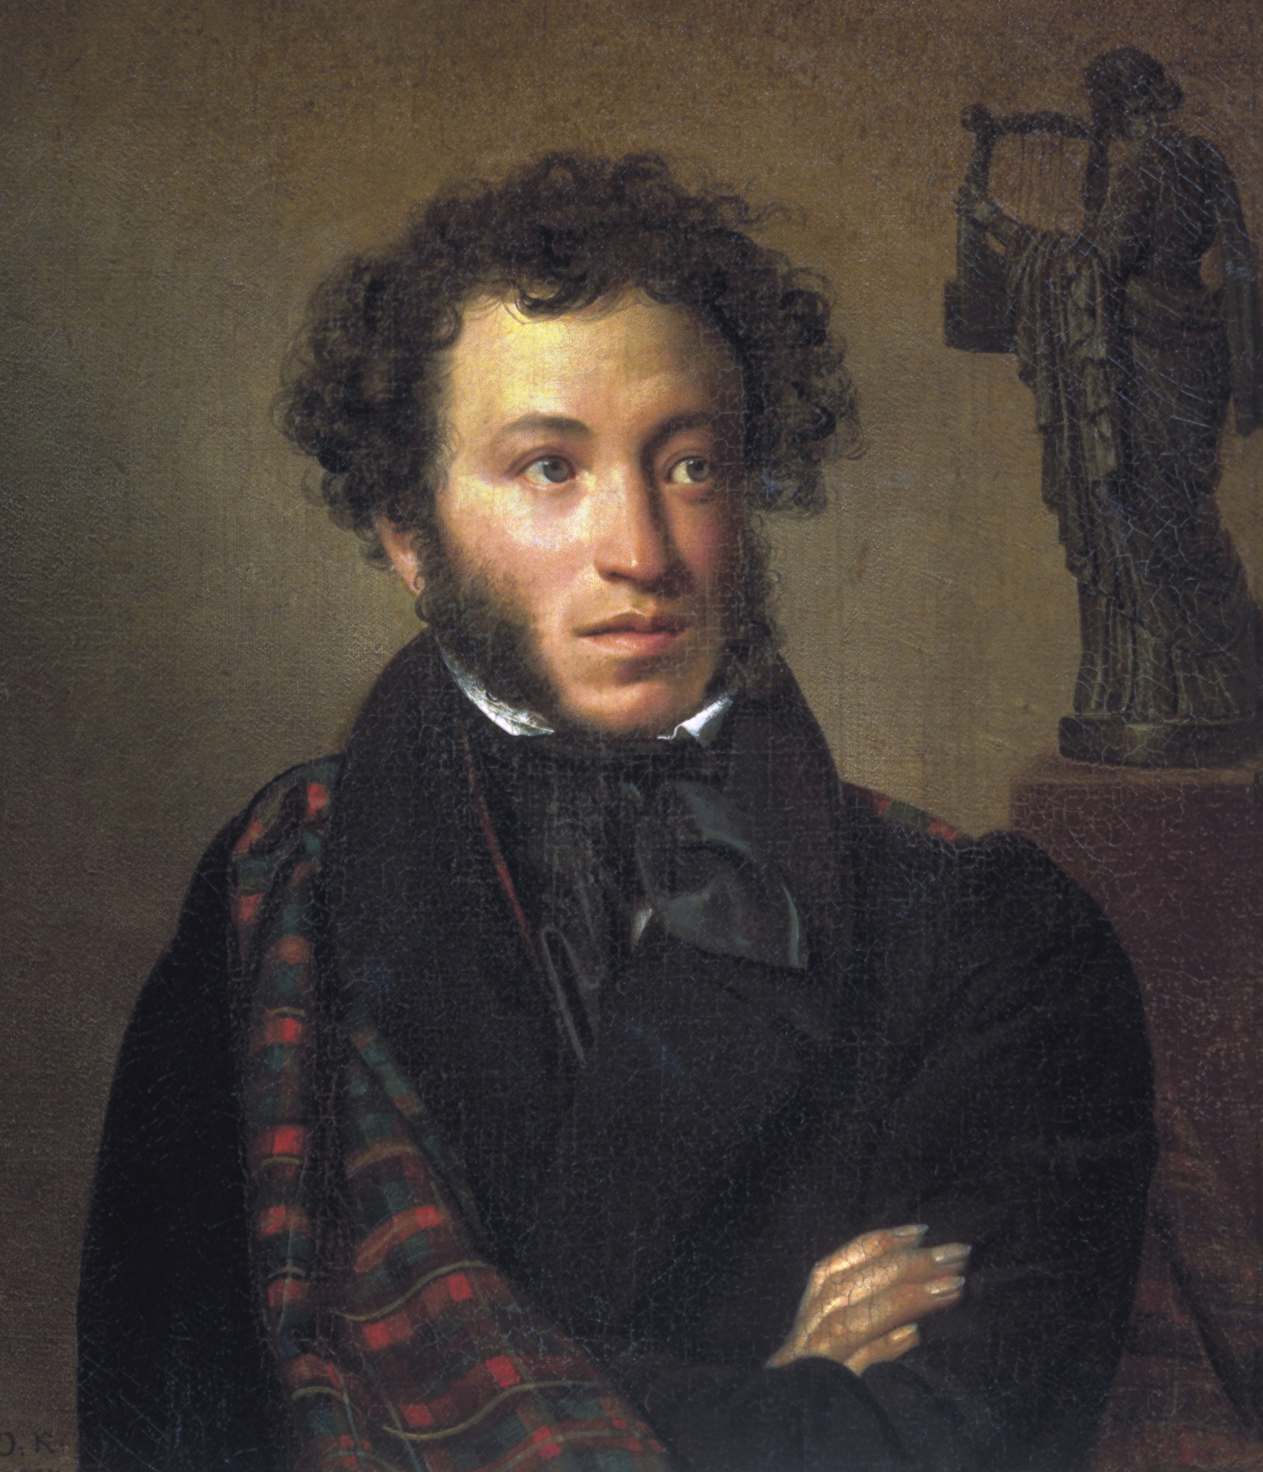 Portrait of Alexander Pushkin.